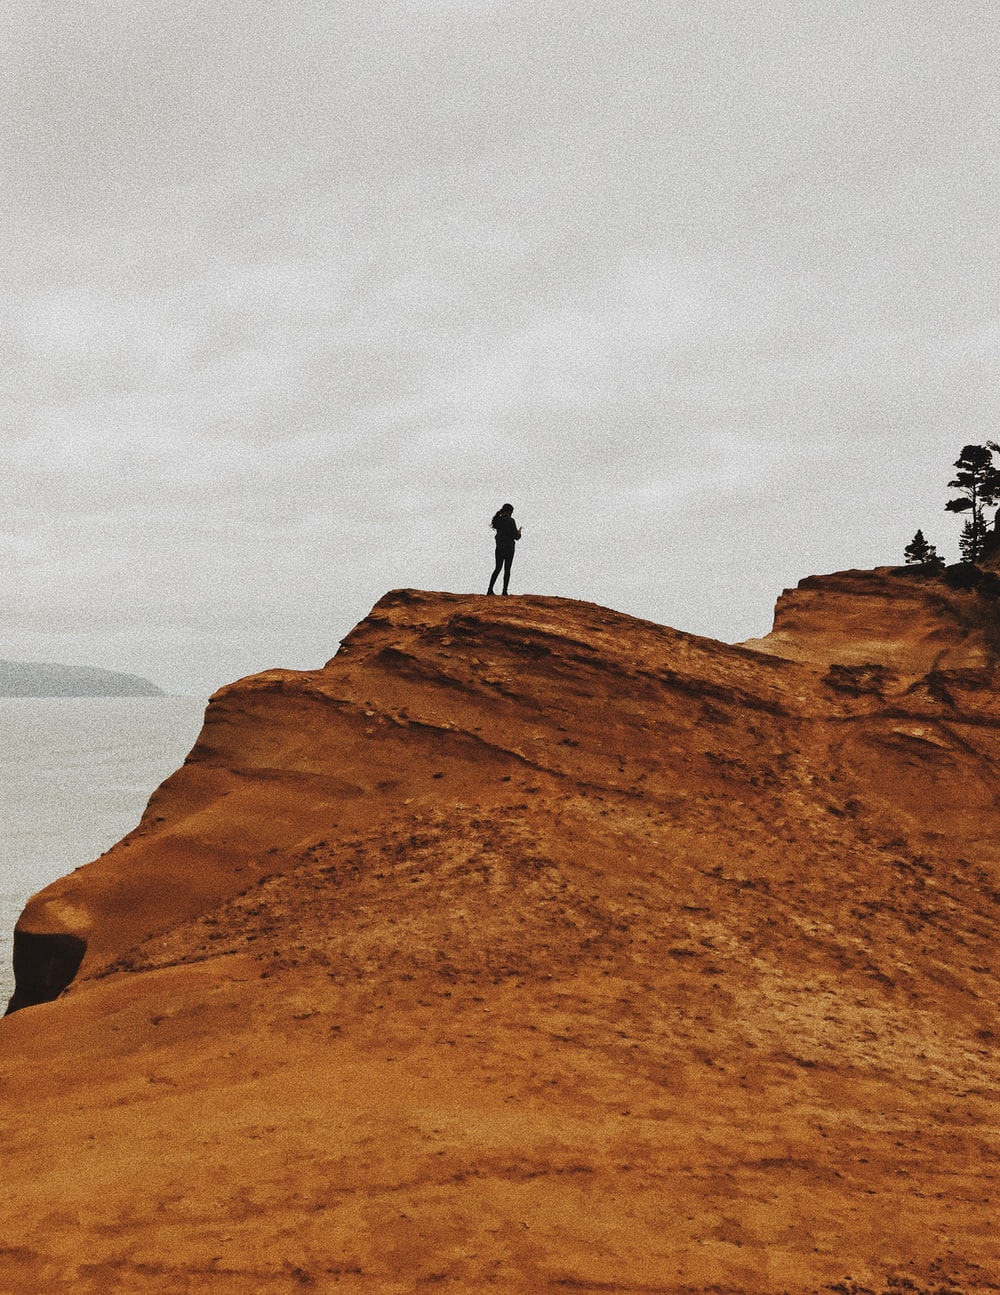 man on rock formation